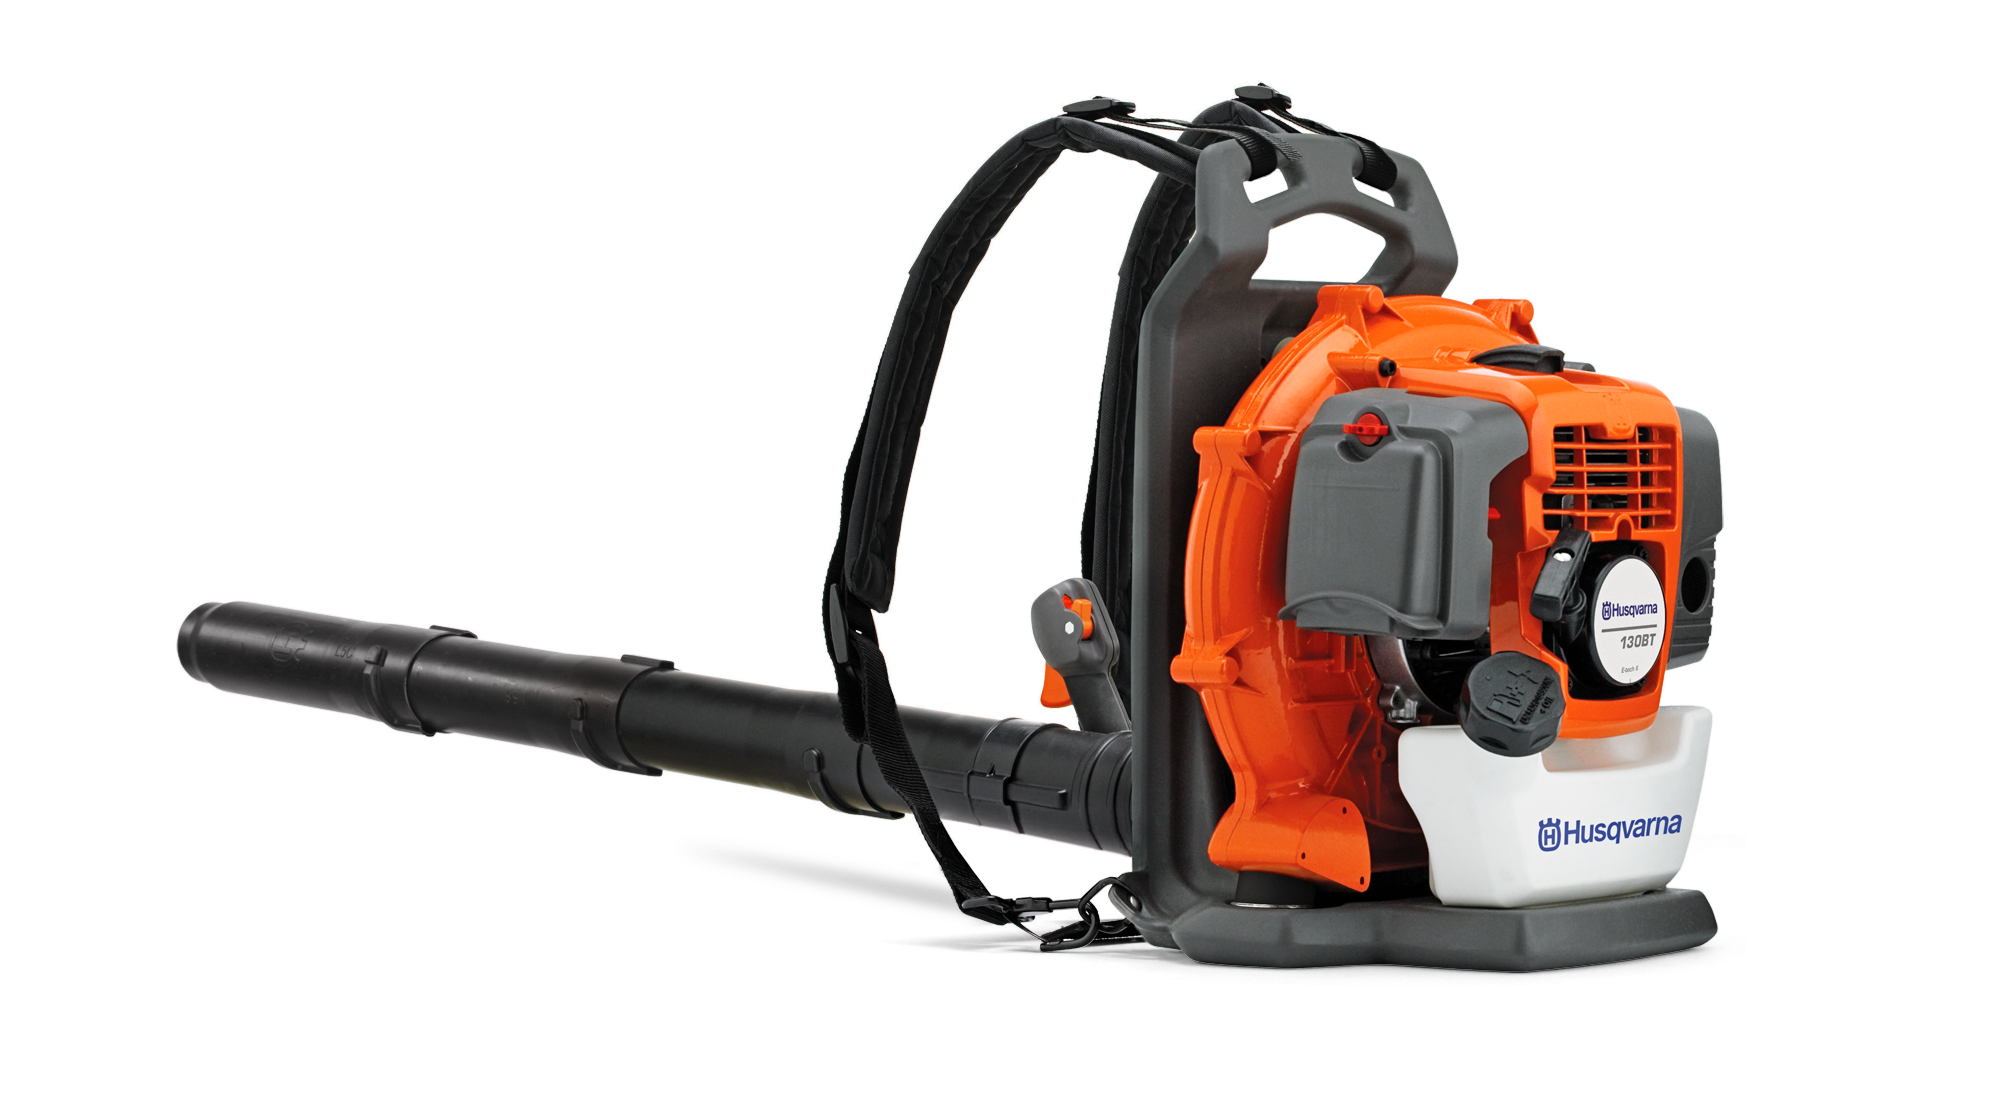 Image for 130BT Gas Backpack Leaf Blower                                                                                                   from HusqvarnaB2C